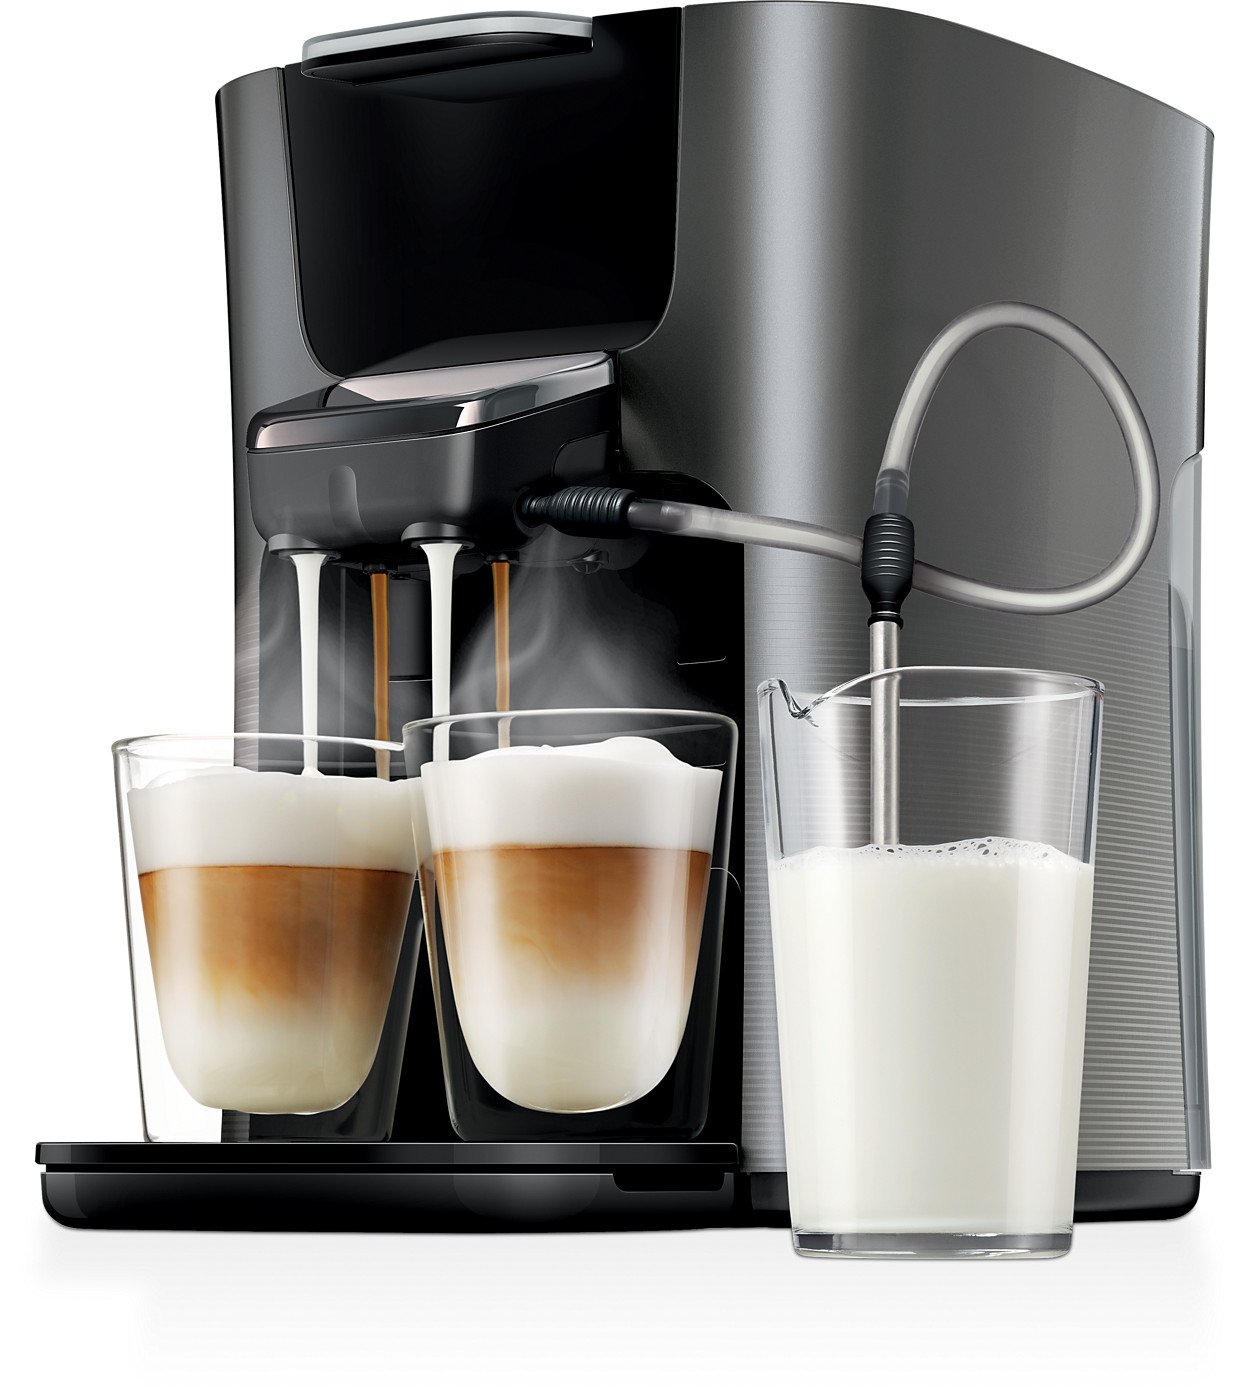 latte duo coffee pod machine hd7857 50 senseo. Black Bedroom Furniture Sets. Home Design Ideas